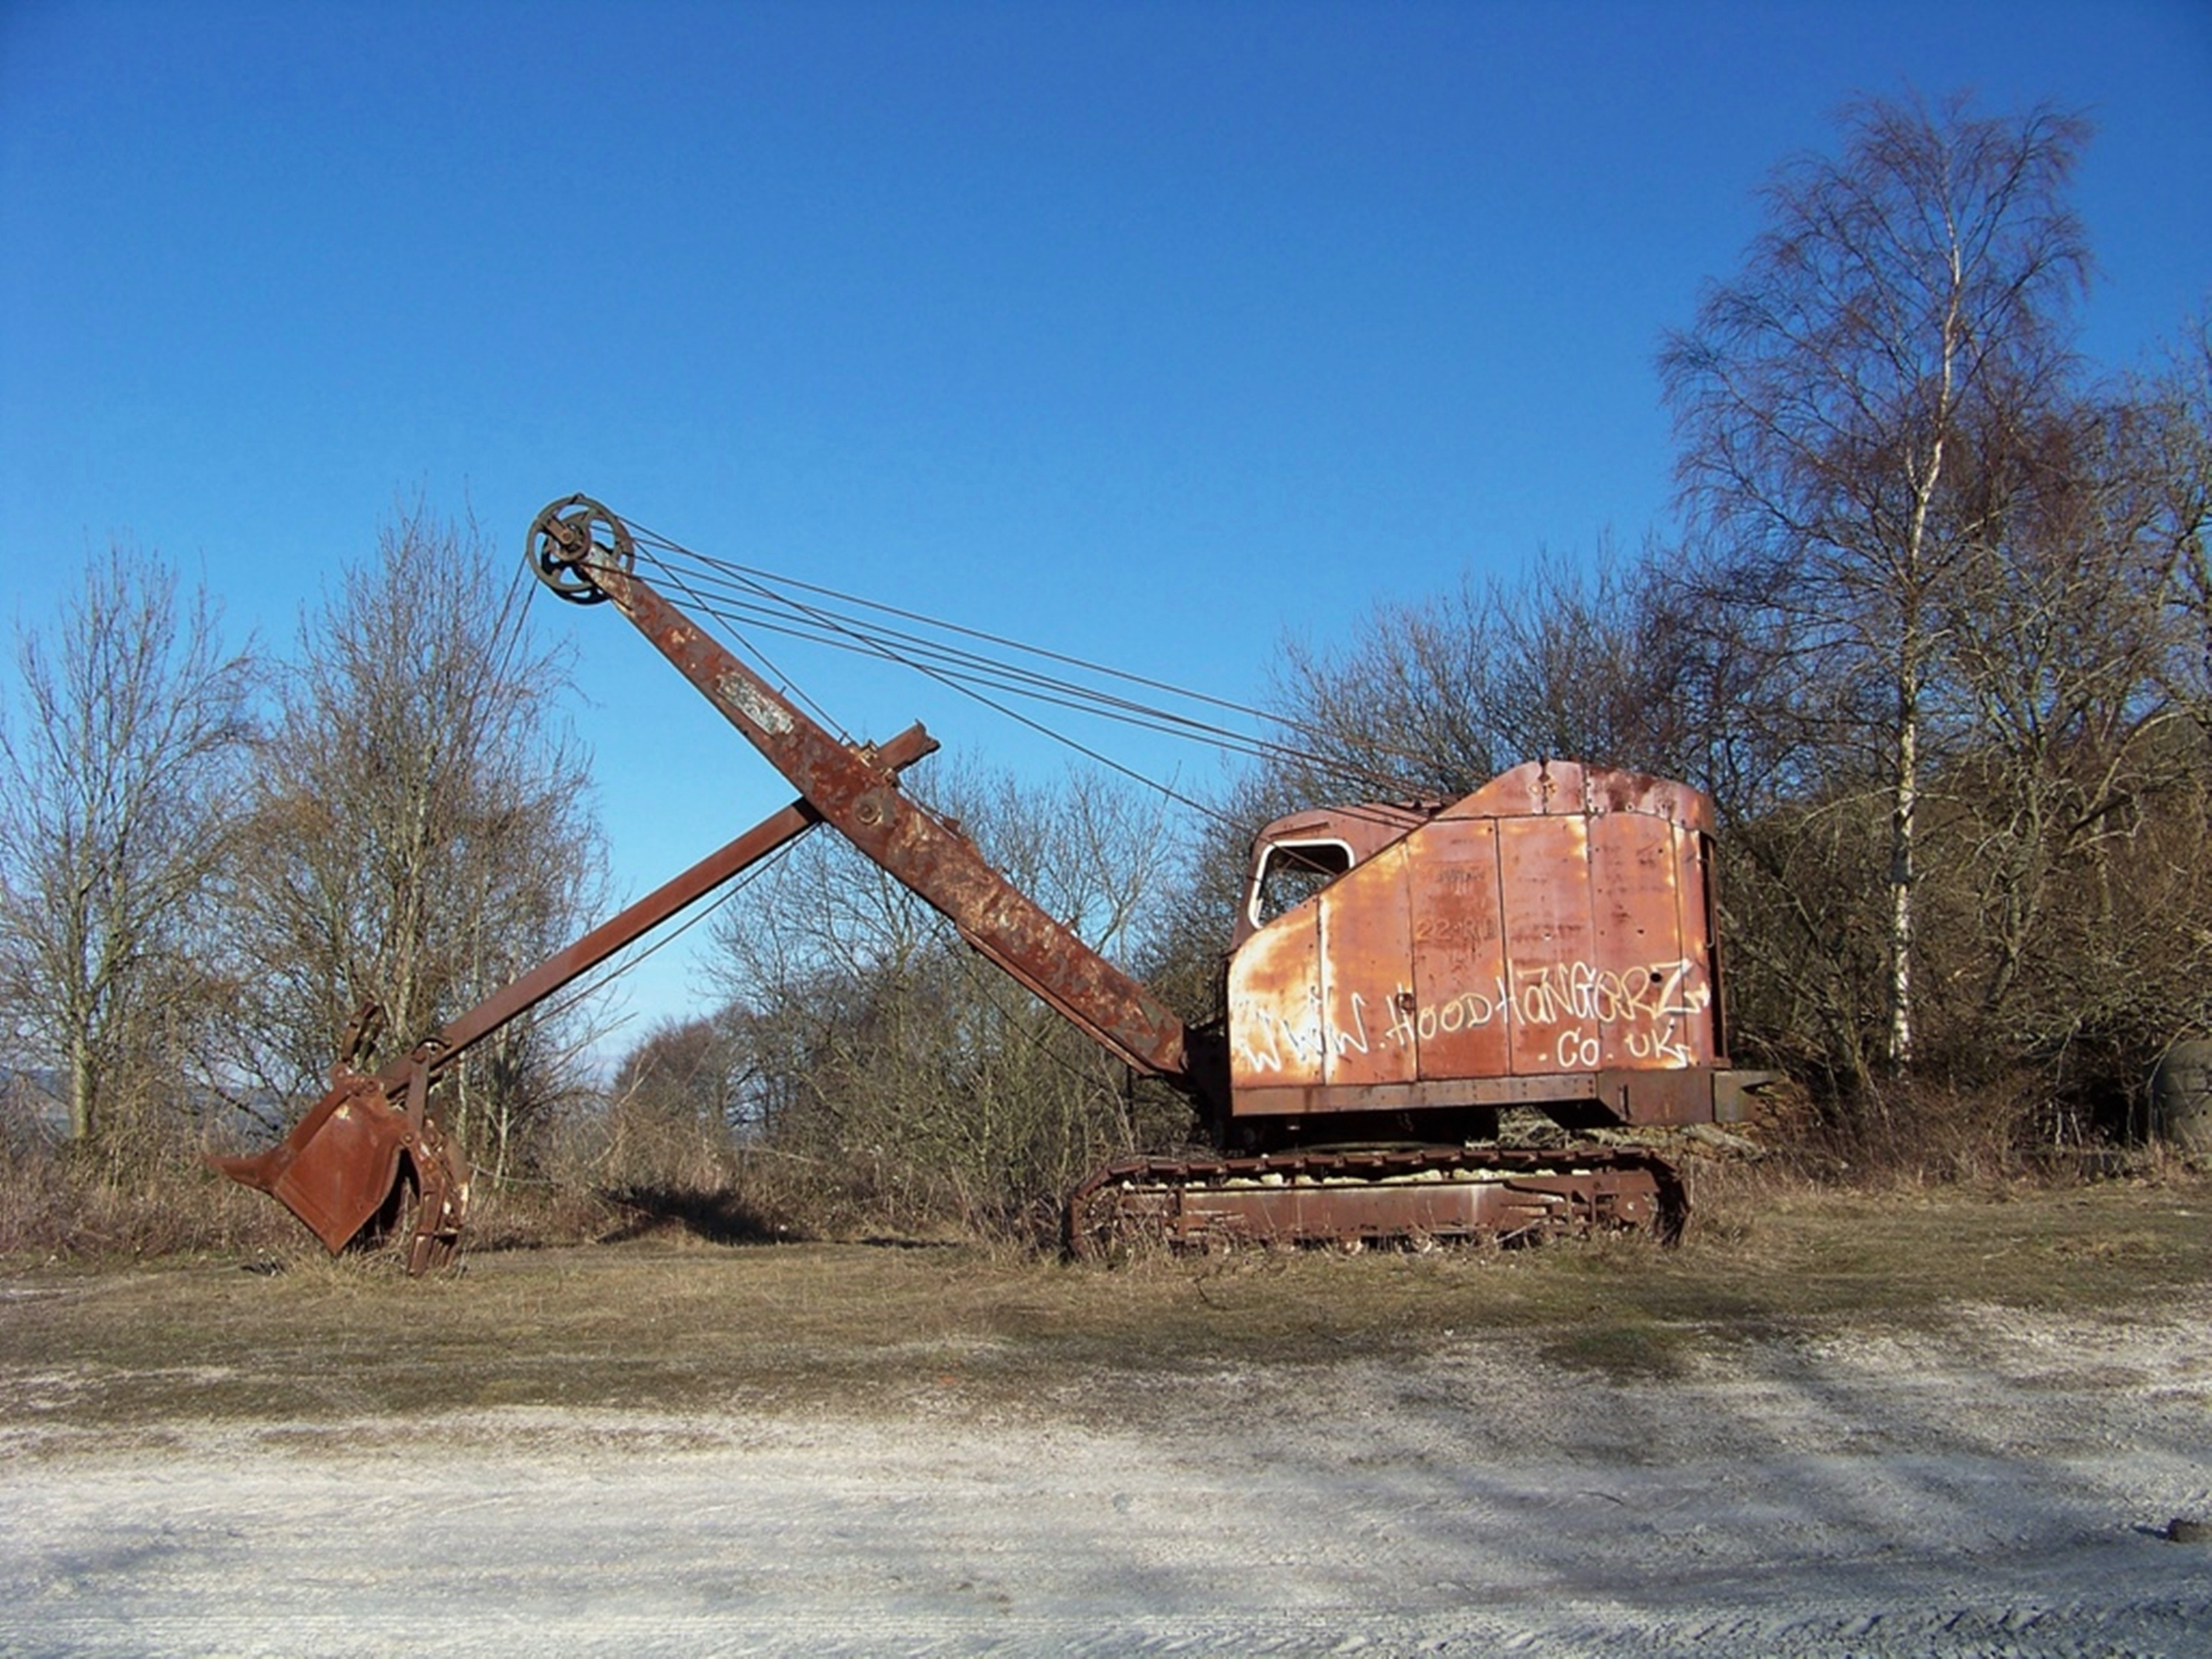 Ruston-Bucyrus 22-RB front-shovel, built c1970